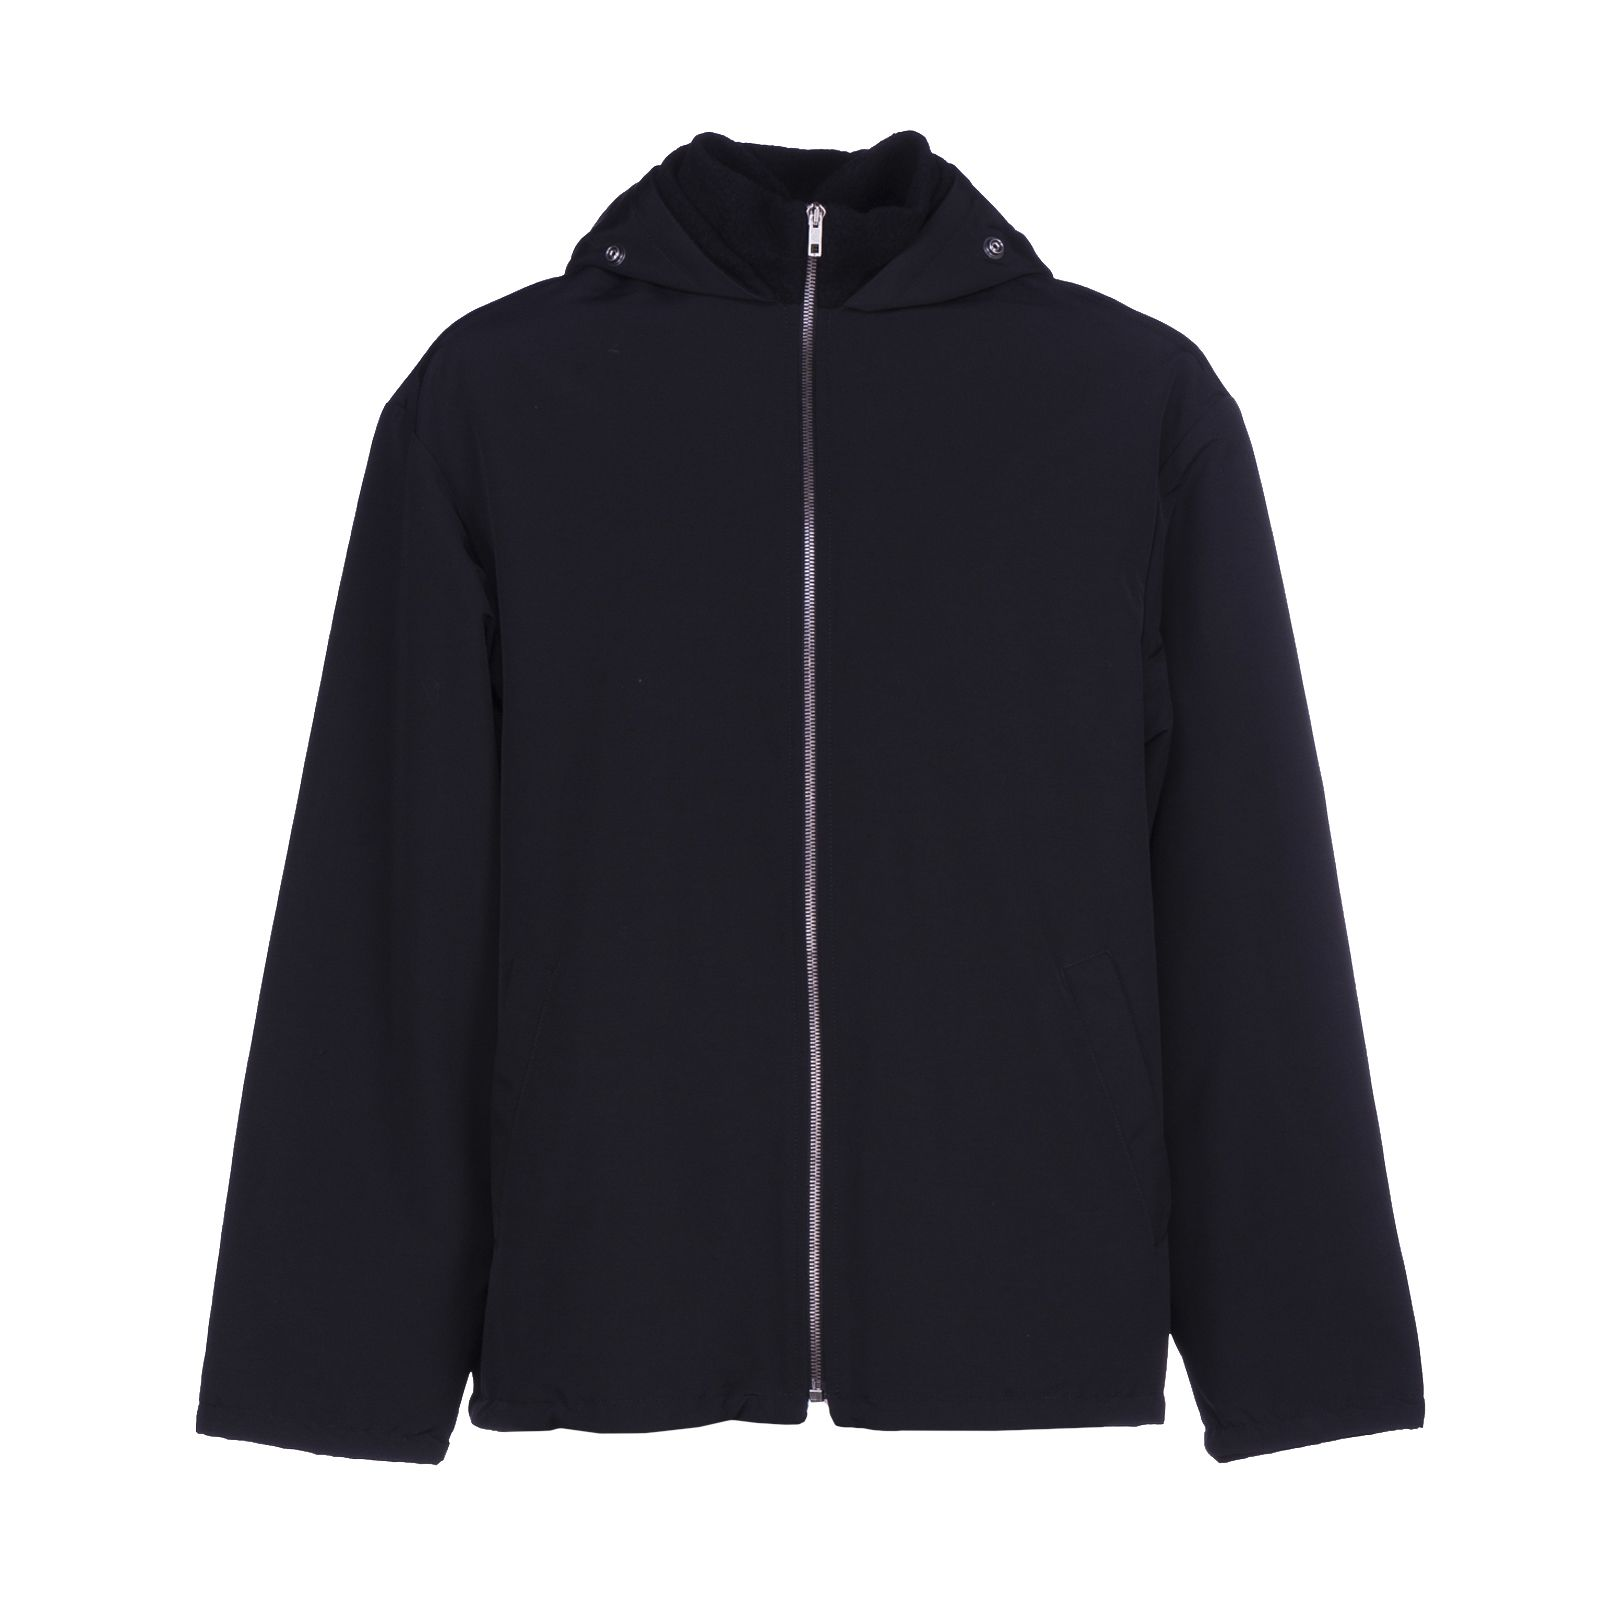 Maison Margiela Hooded Short Jacket